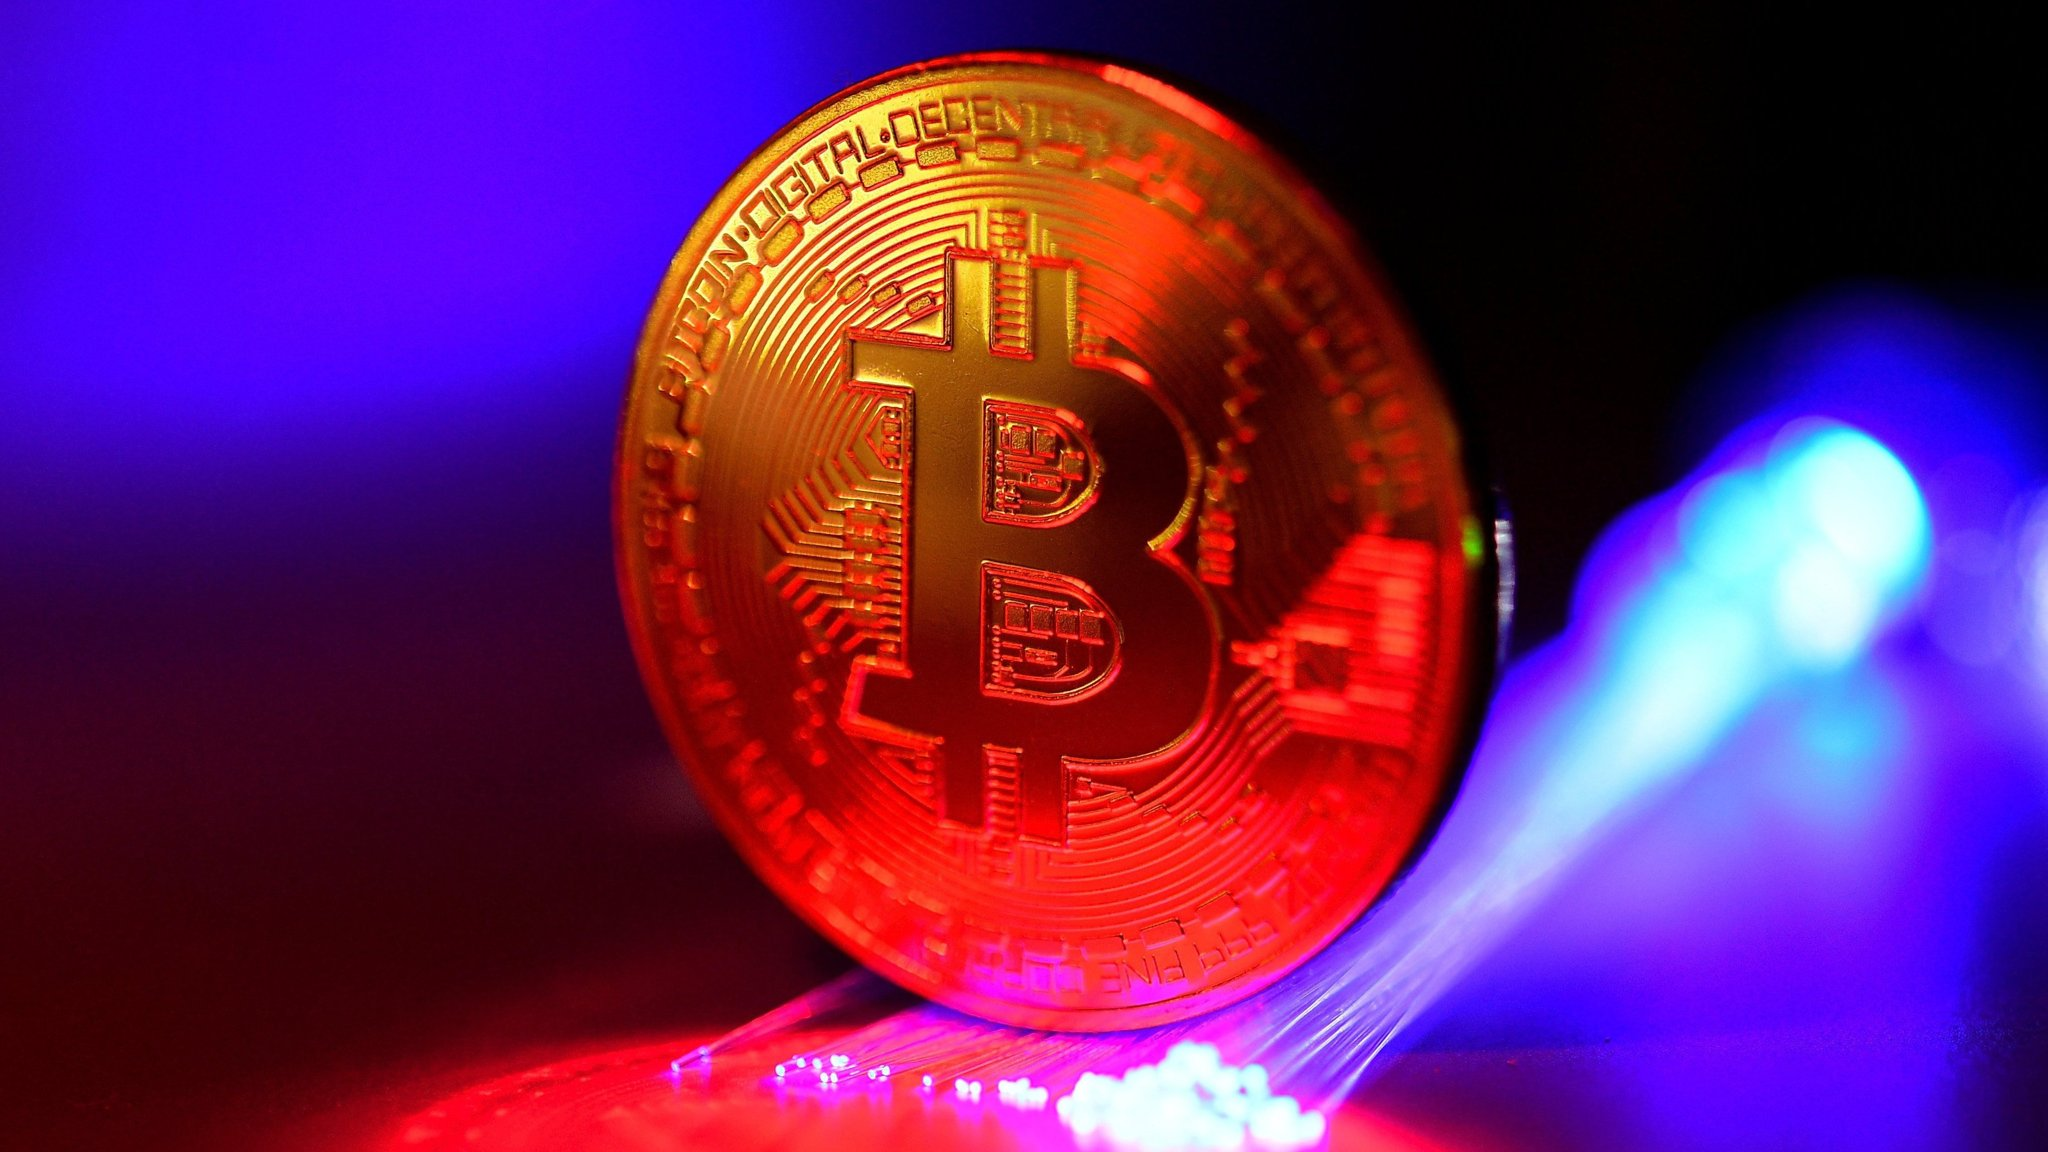 Cryptocurrencies: debased coinages